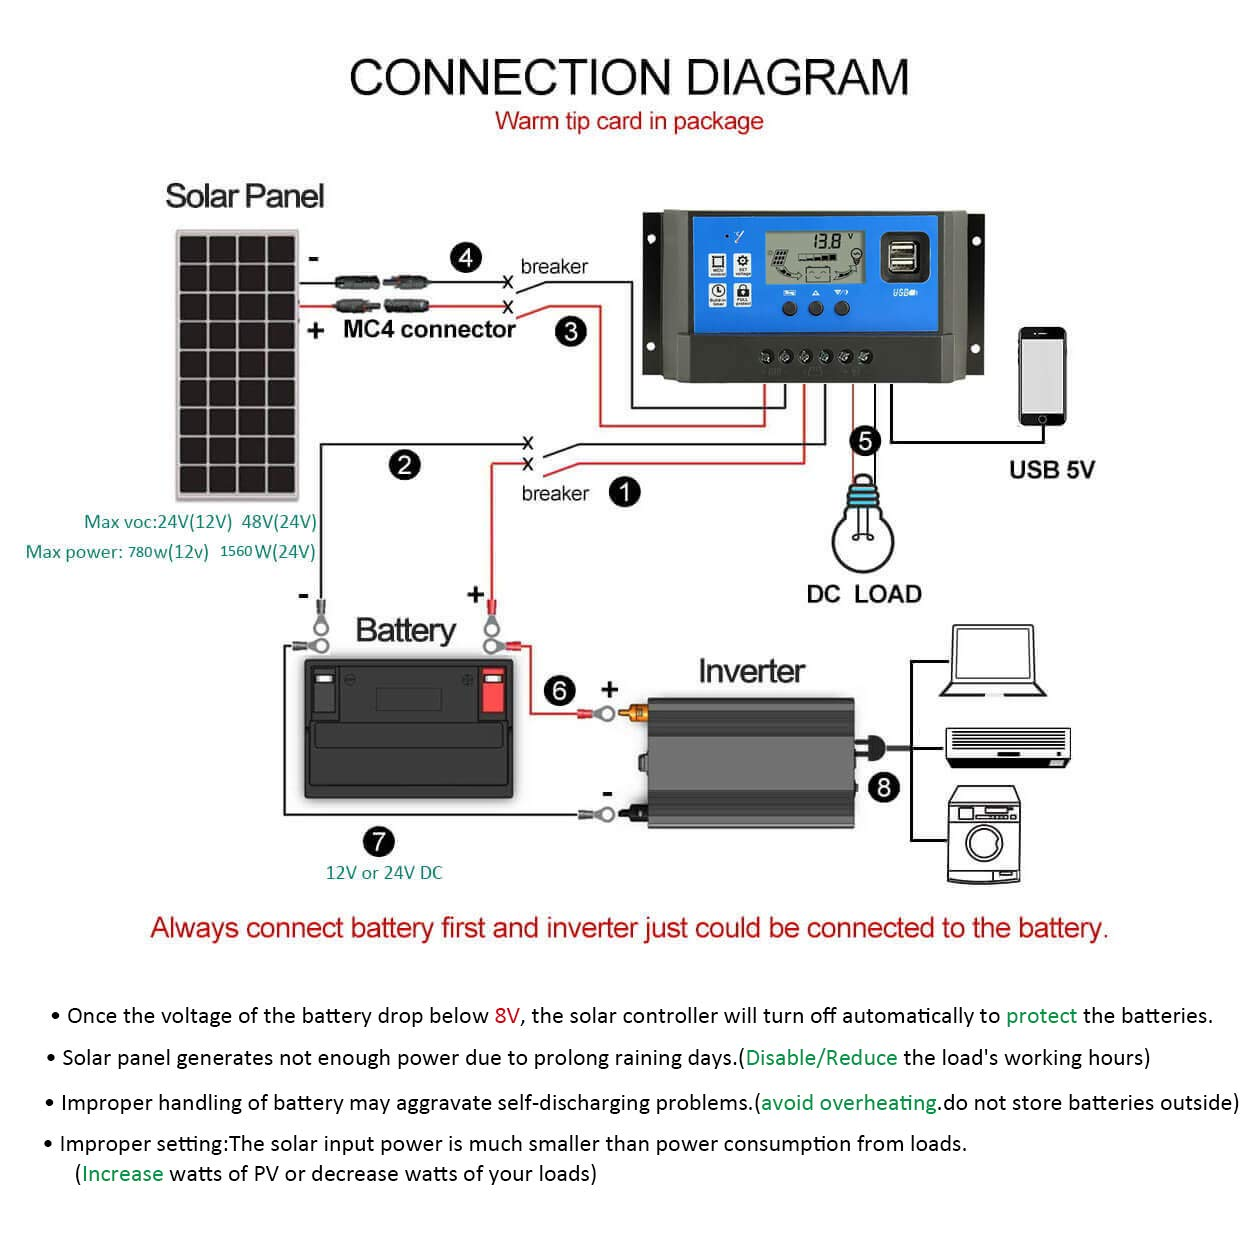 PowMr 60a Charge Controller - Solar Panel Charge Controller 12V 24V,Adjustable Parameter LCD Display Current/Capacity and Timer Setting ON/Off with 5V Dual USB(CM-60A) by PowMr (Image #6)